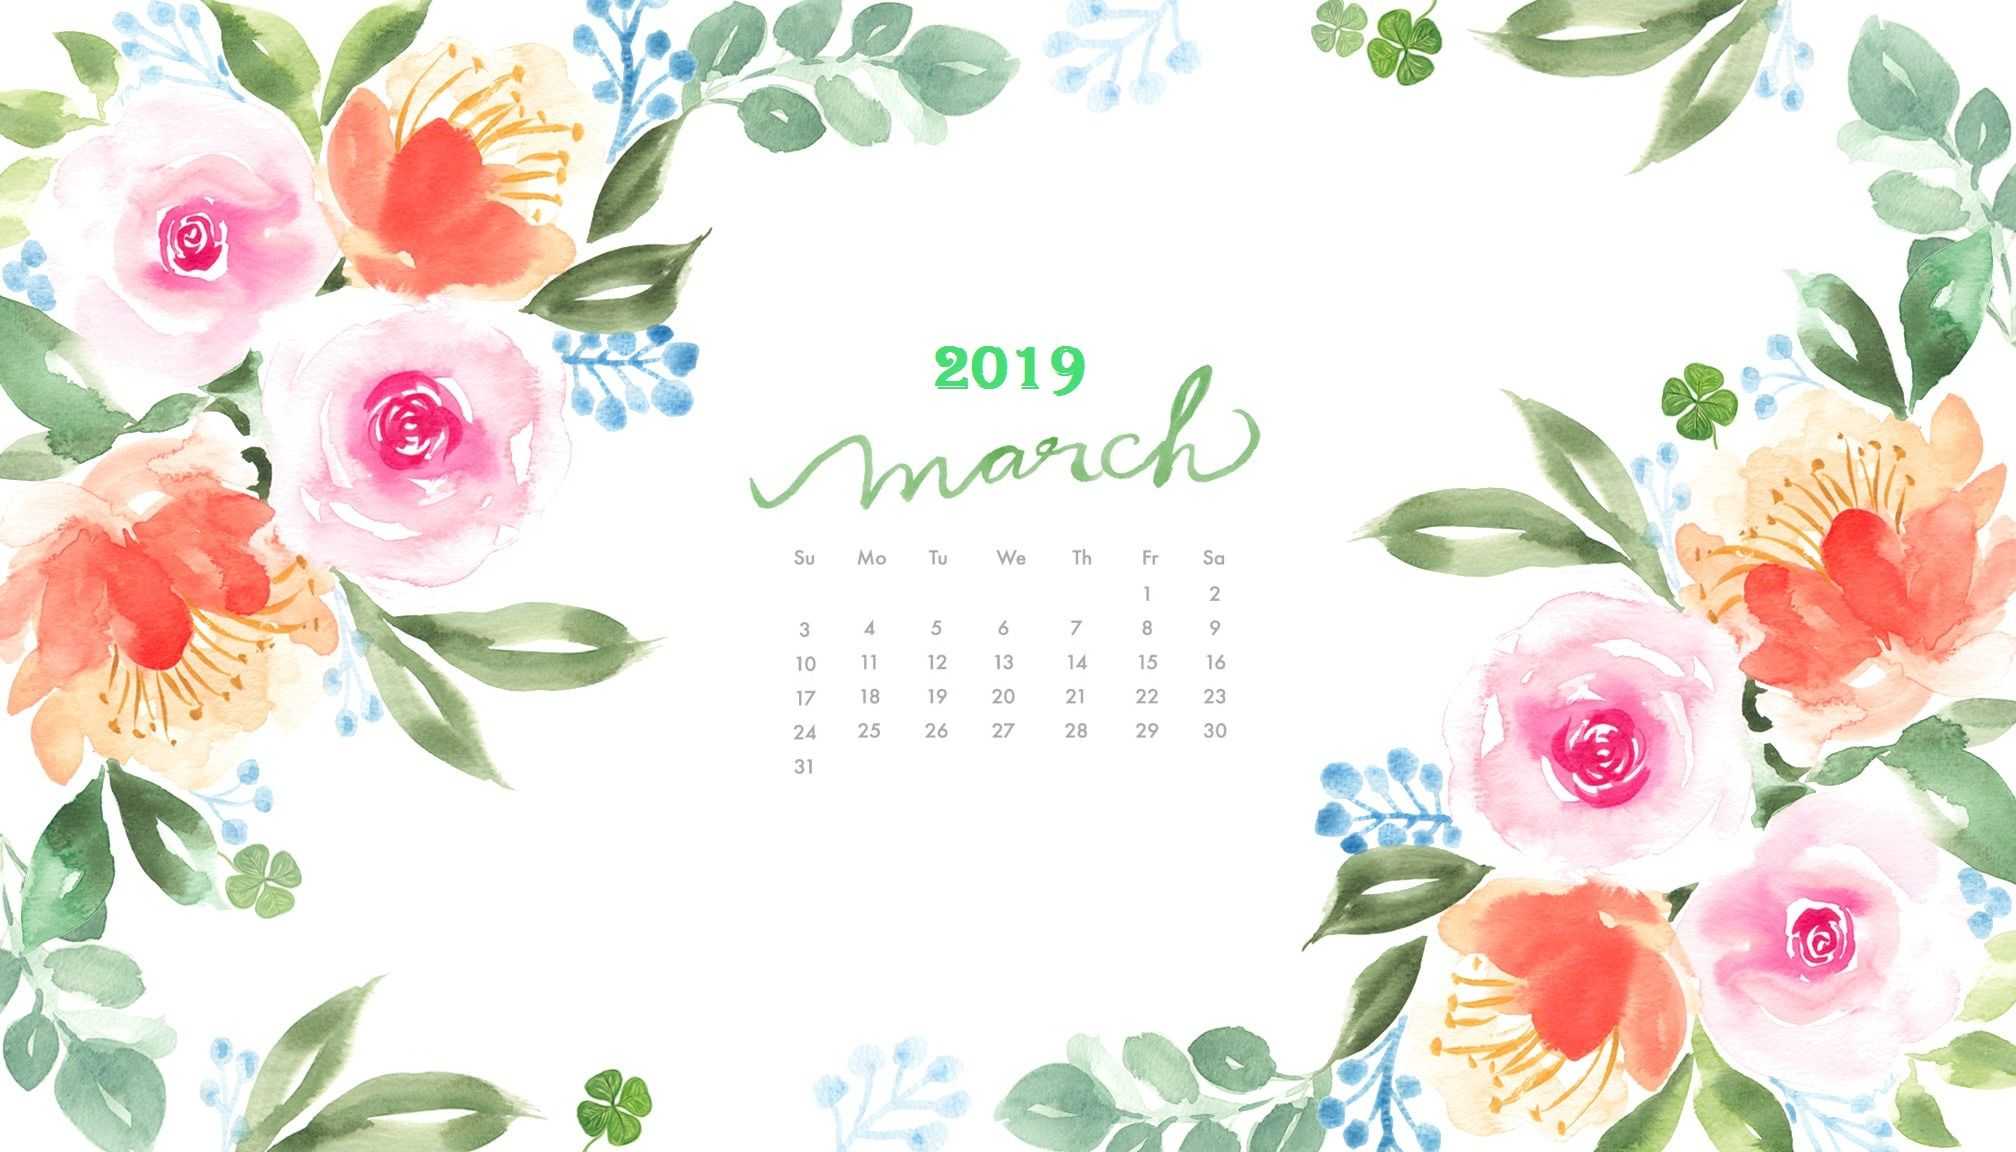 Florl March 2019 Desk Calendar Wallpaper